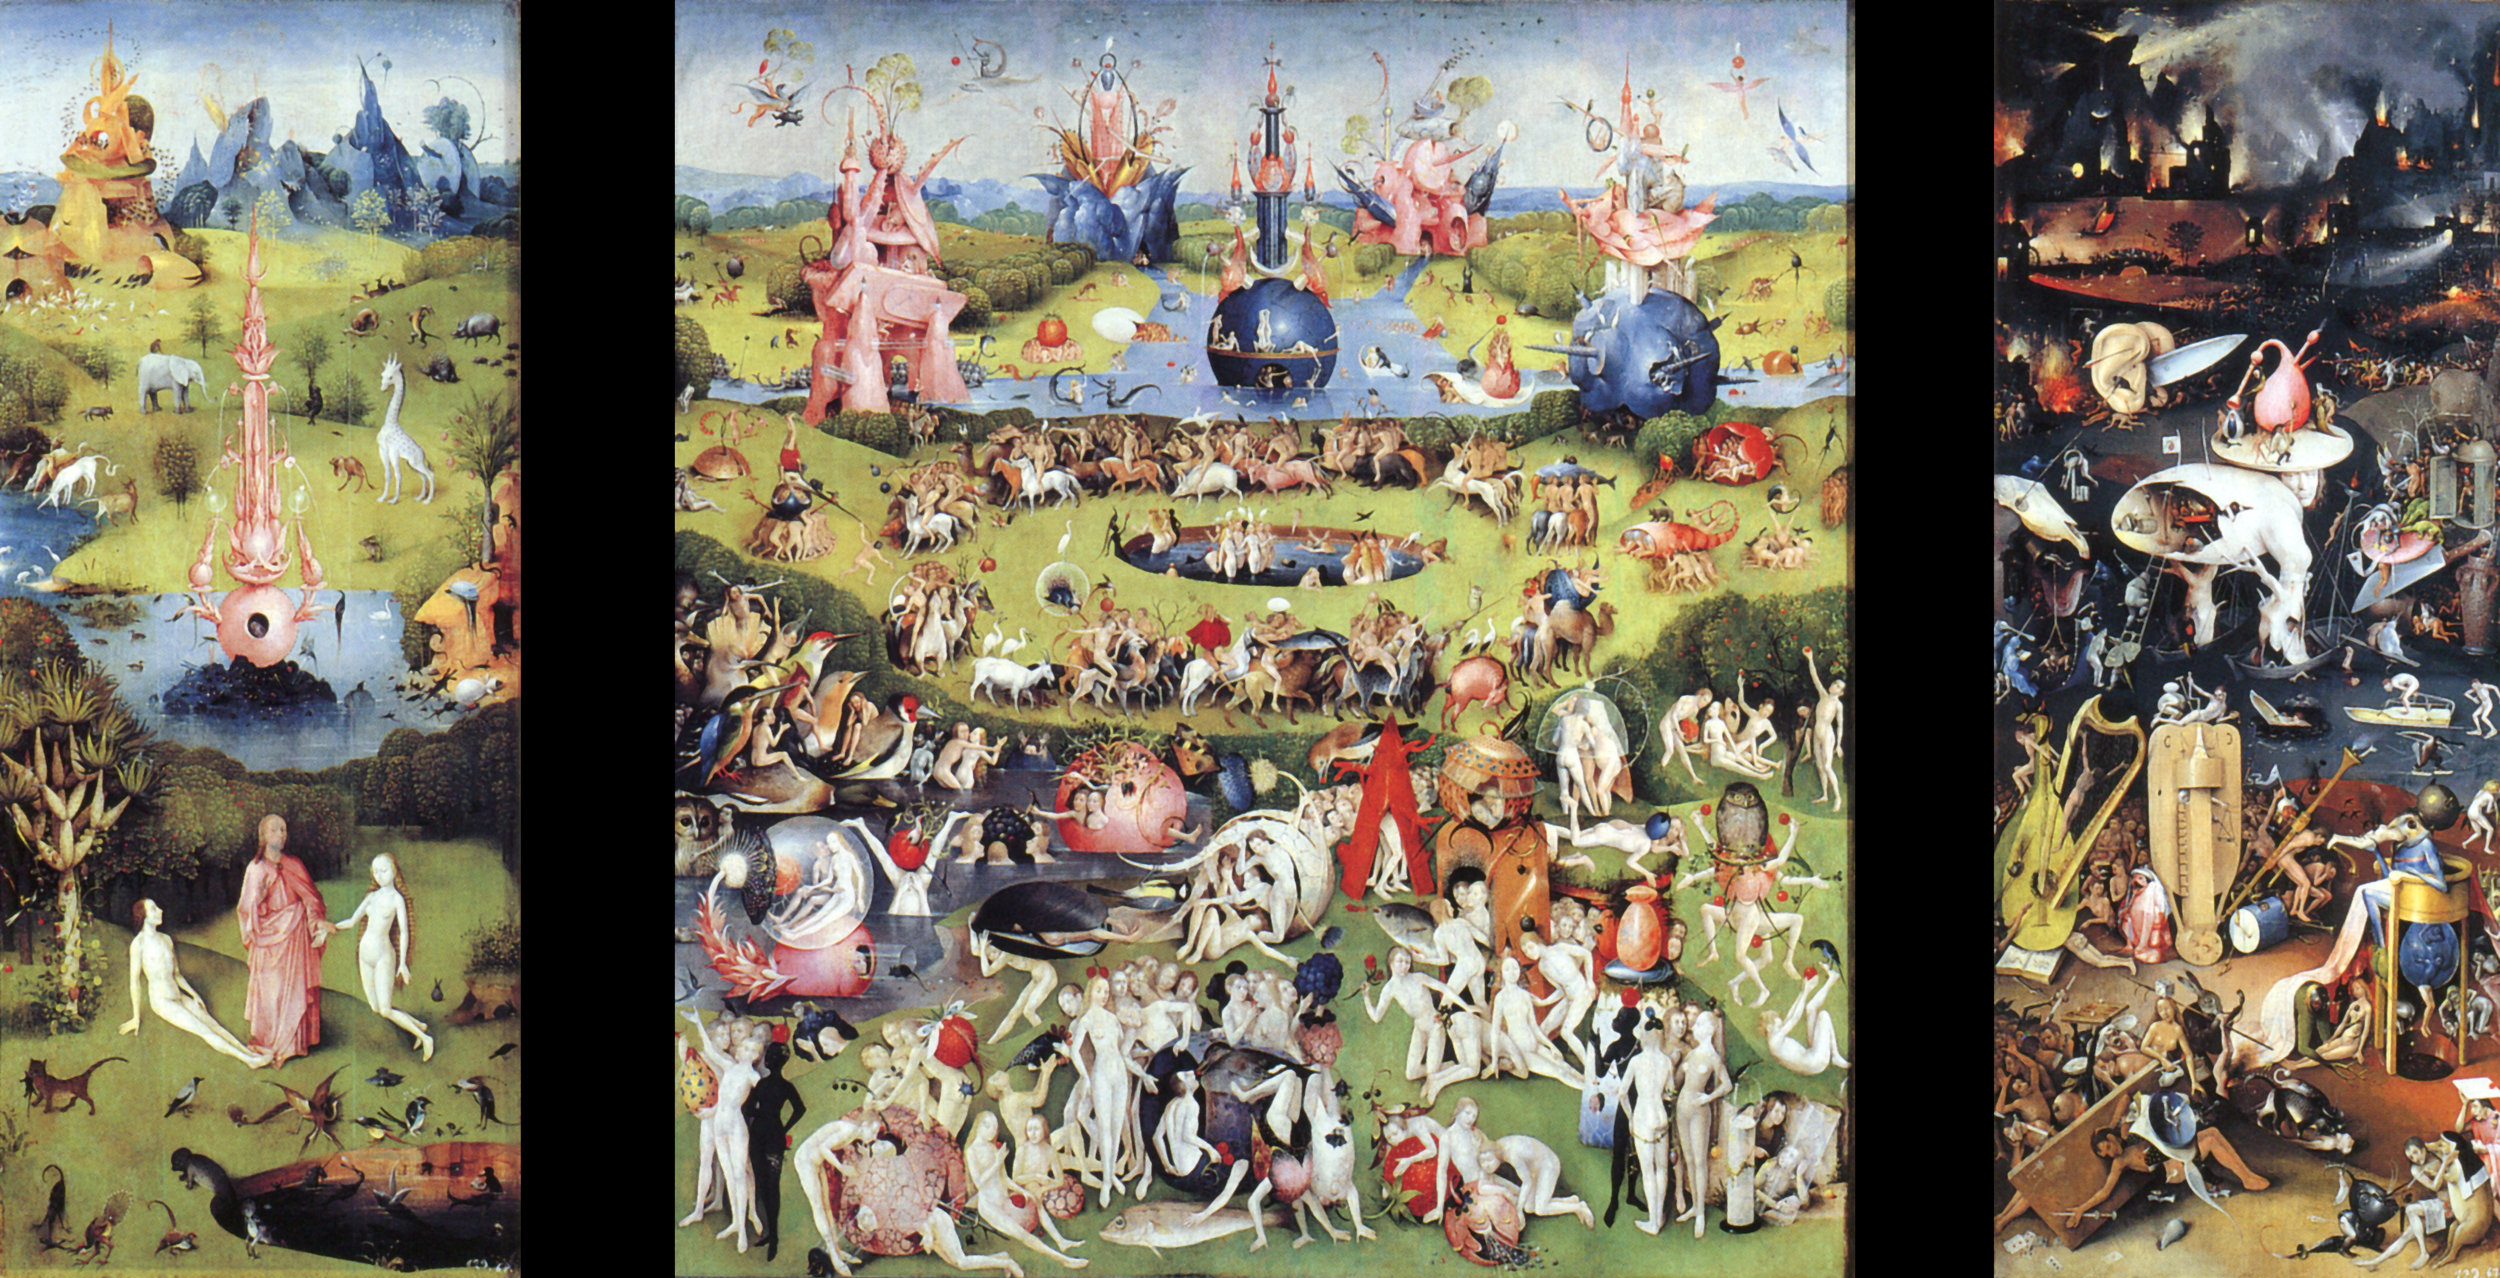 The_Garden_of_Earthly_Delights_by_Hieronymus_Bosch.jpg